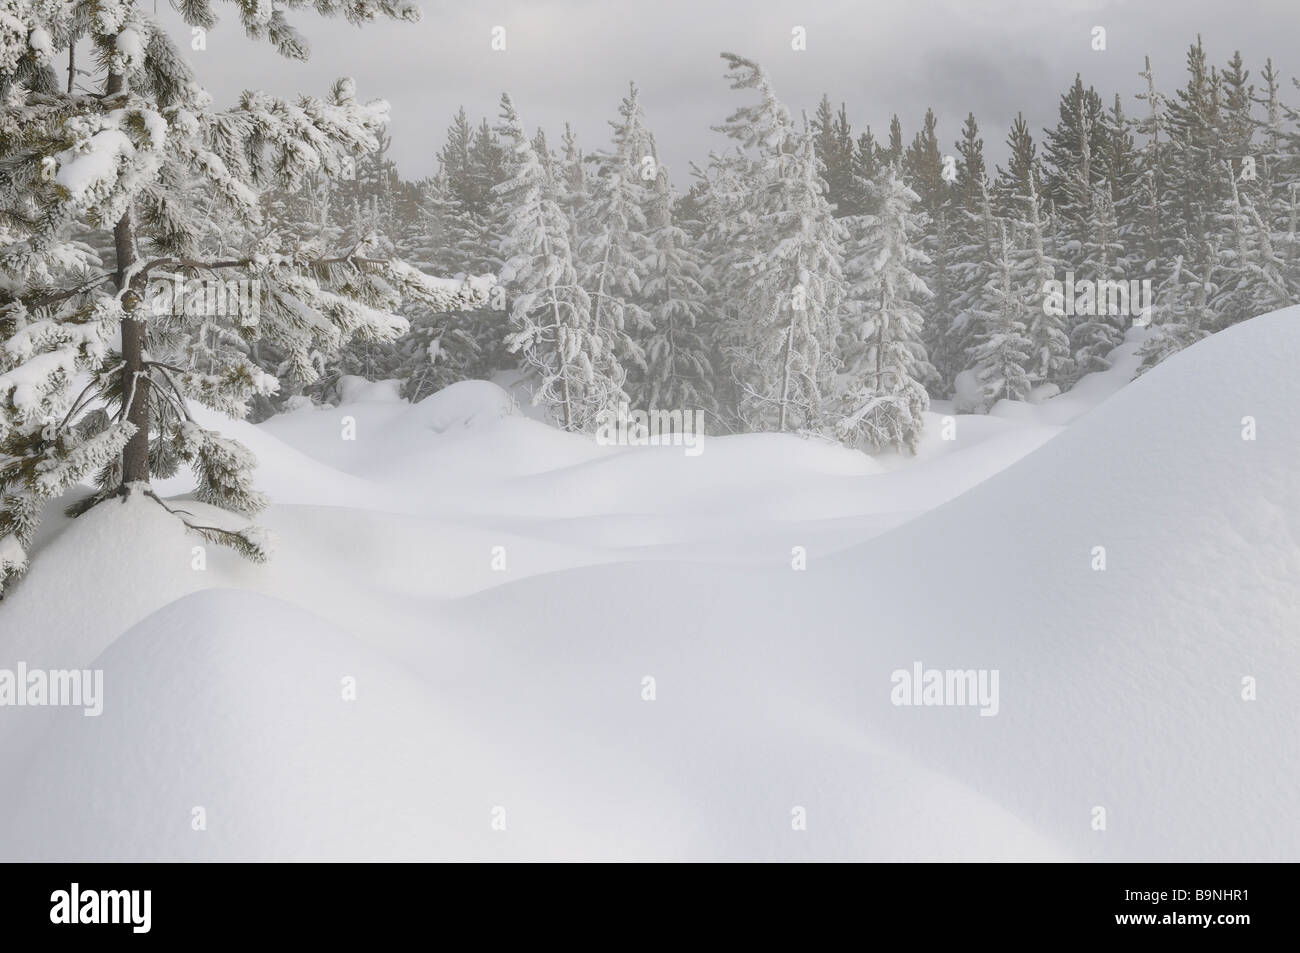 Snow covered Lodgepole Pine forest near steaming Springs of Norris Geyser Basin Yellowstone National Park Wyoming - Stock Image